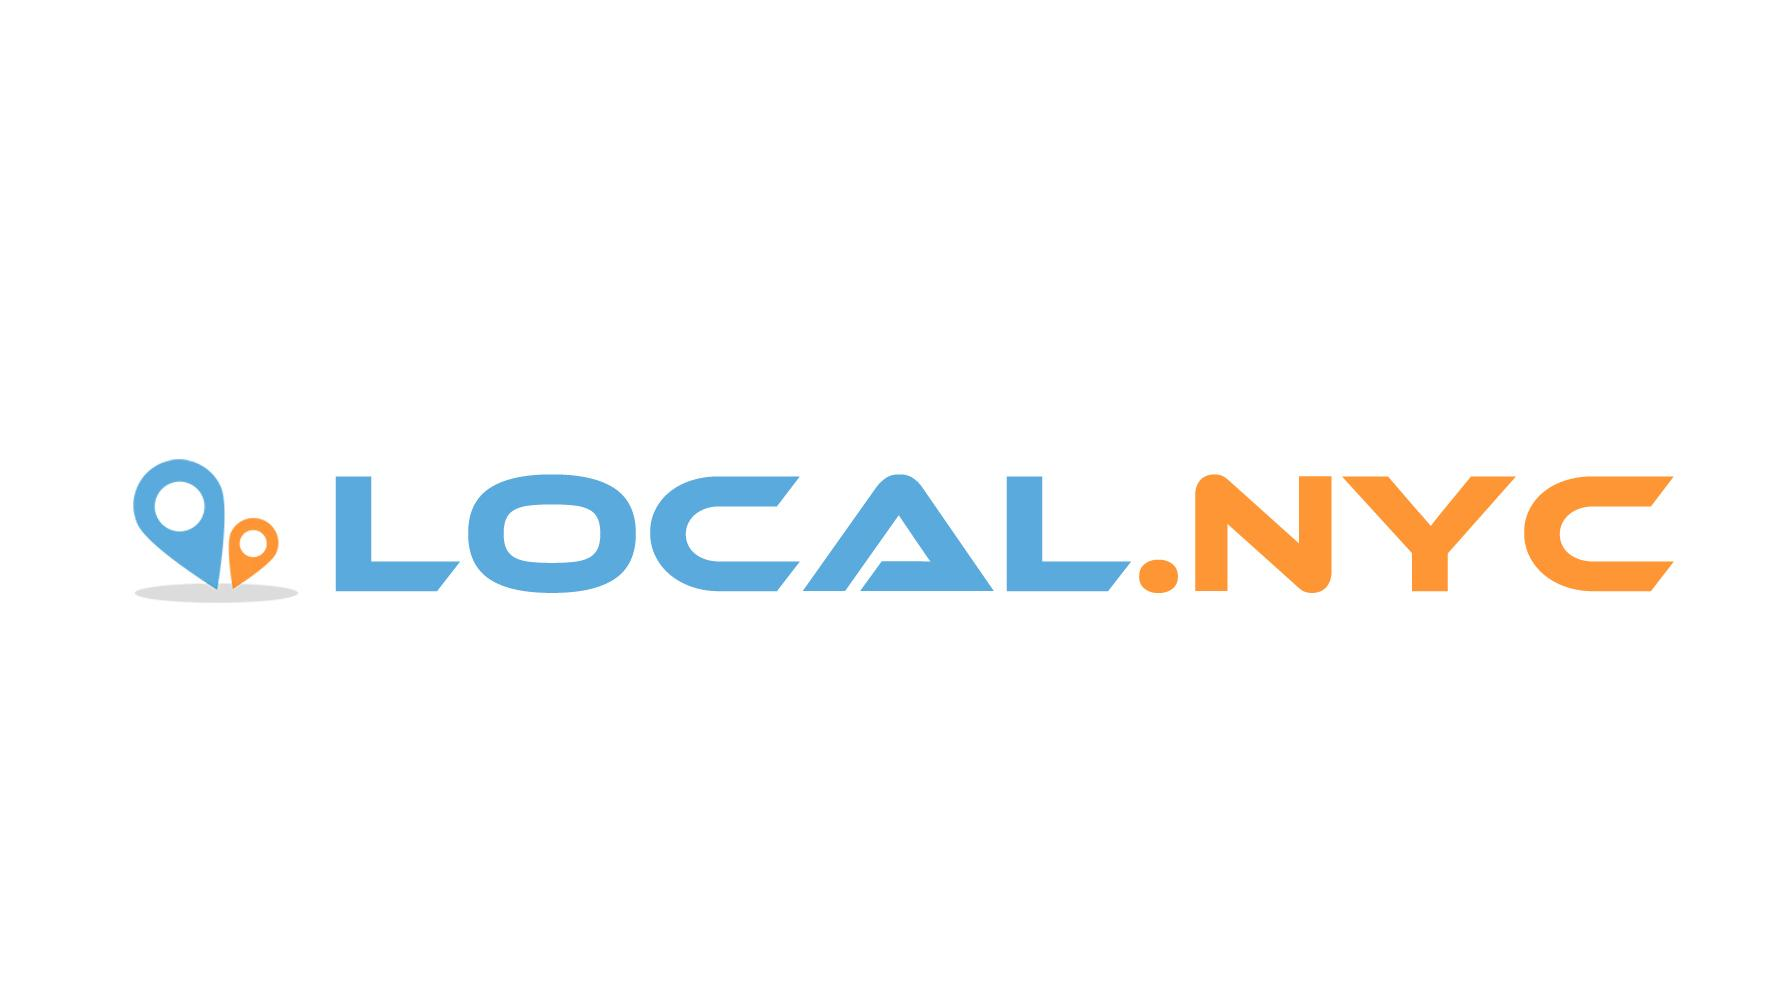 Local NYC Domain Dvelopment